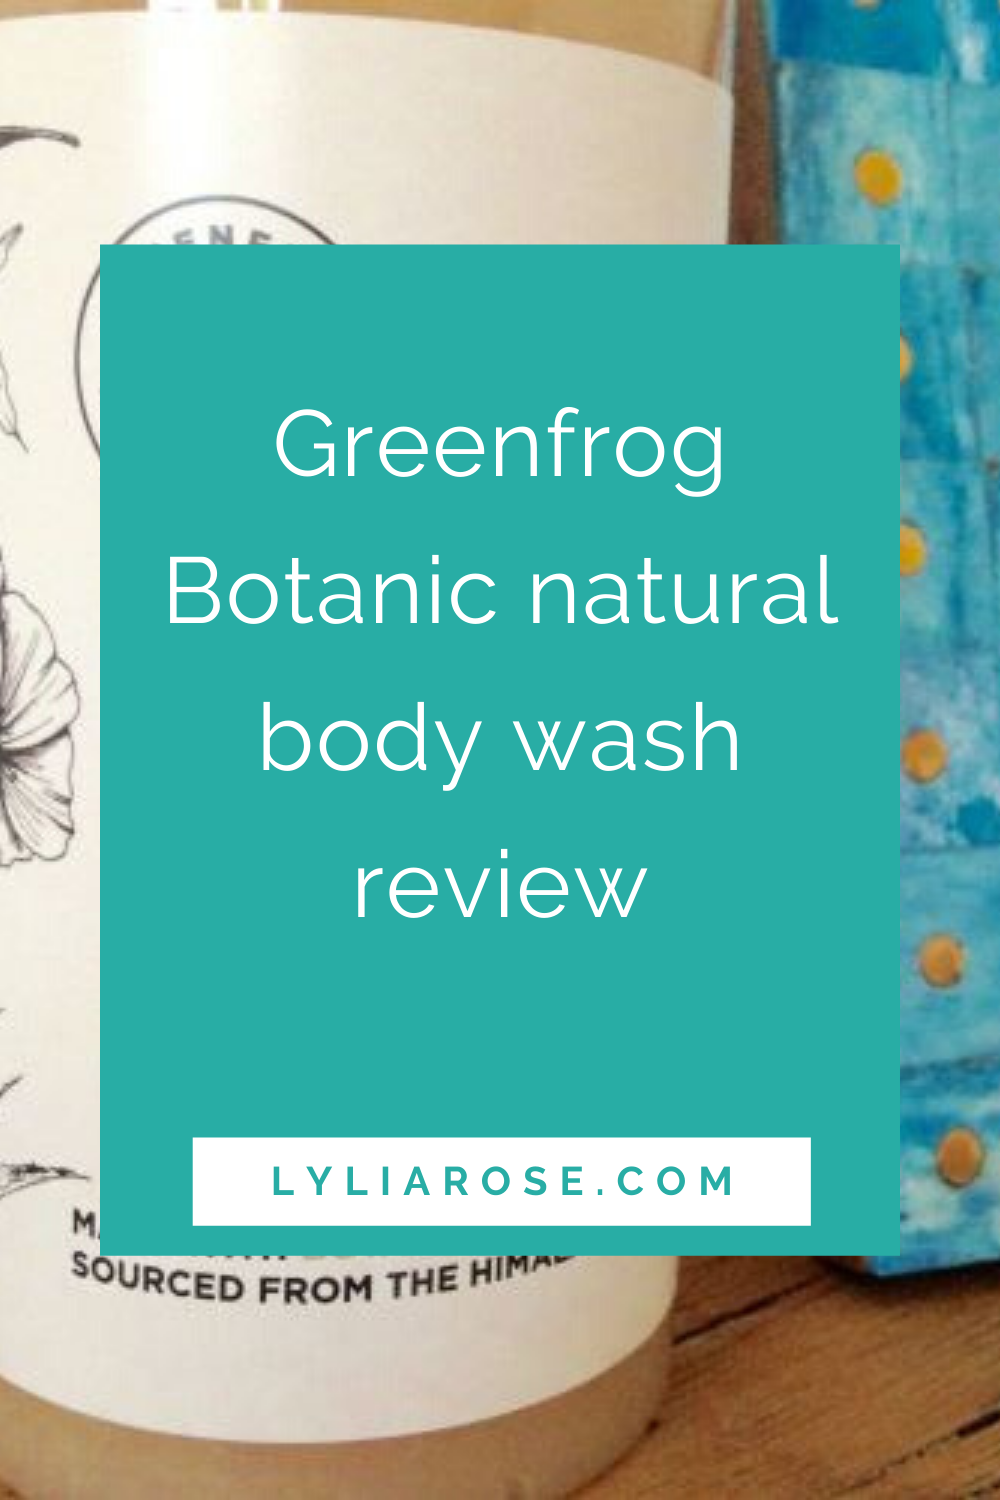 Greenfrog Botanic natural body wash review (5)